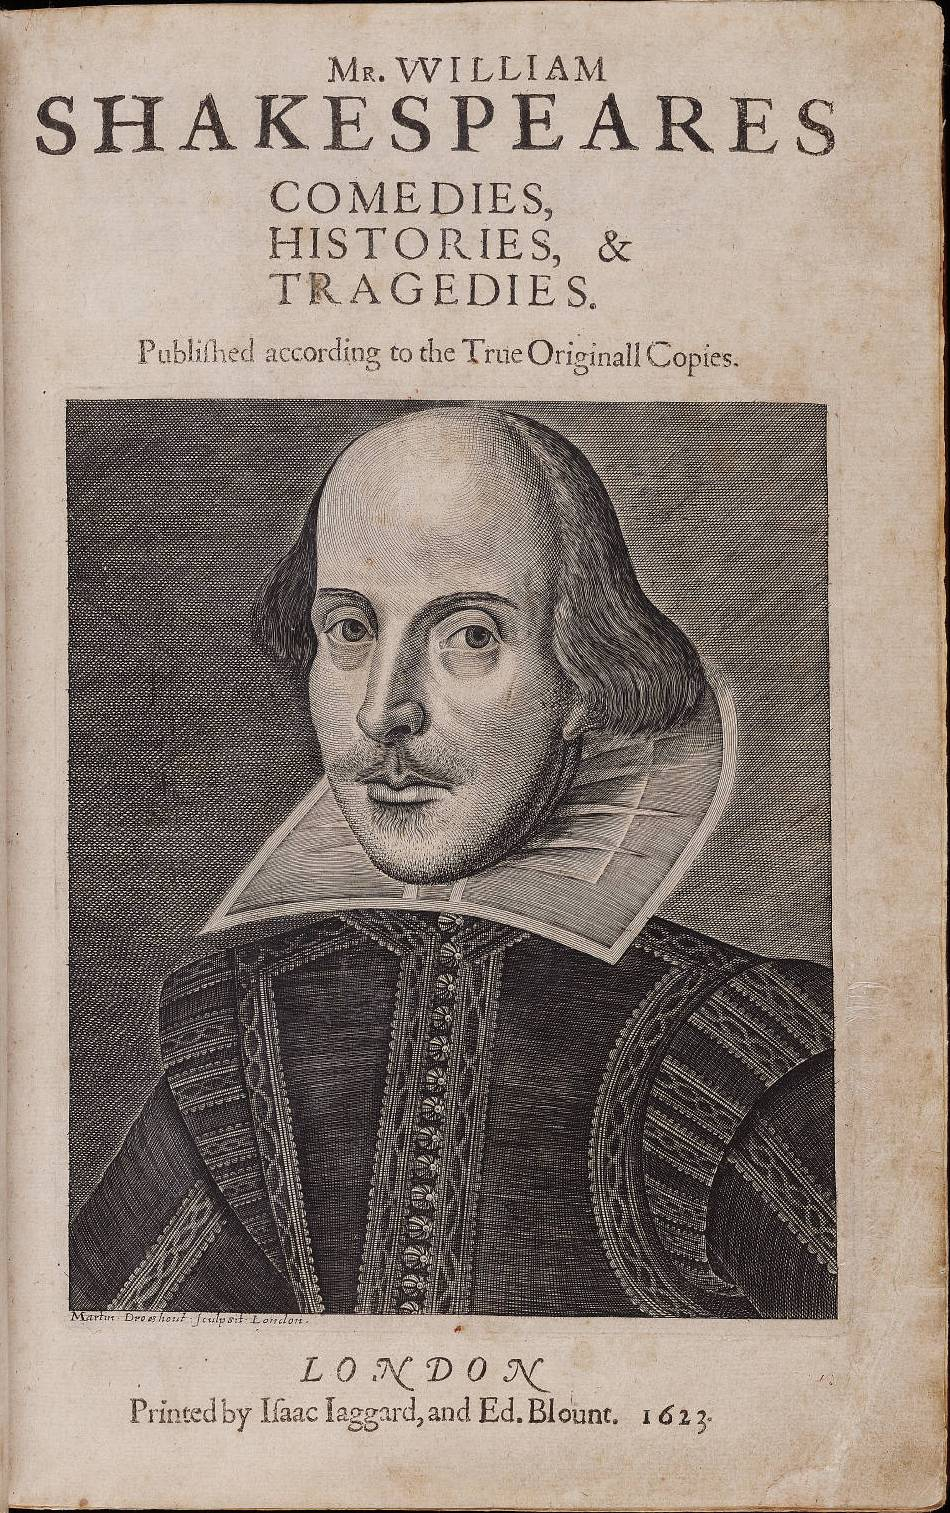 Top 5 Most Expensive Shakespeare Sales on AbeBooks